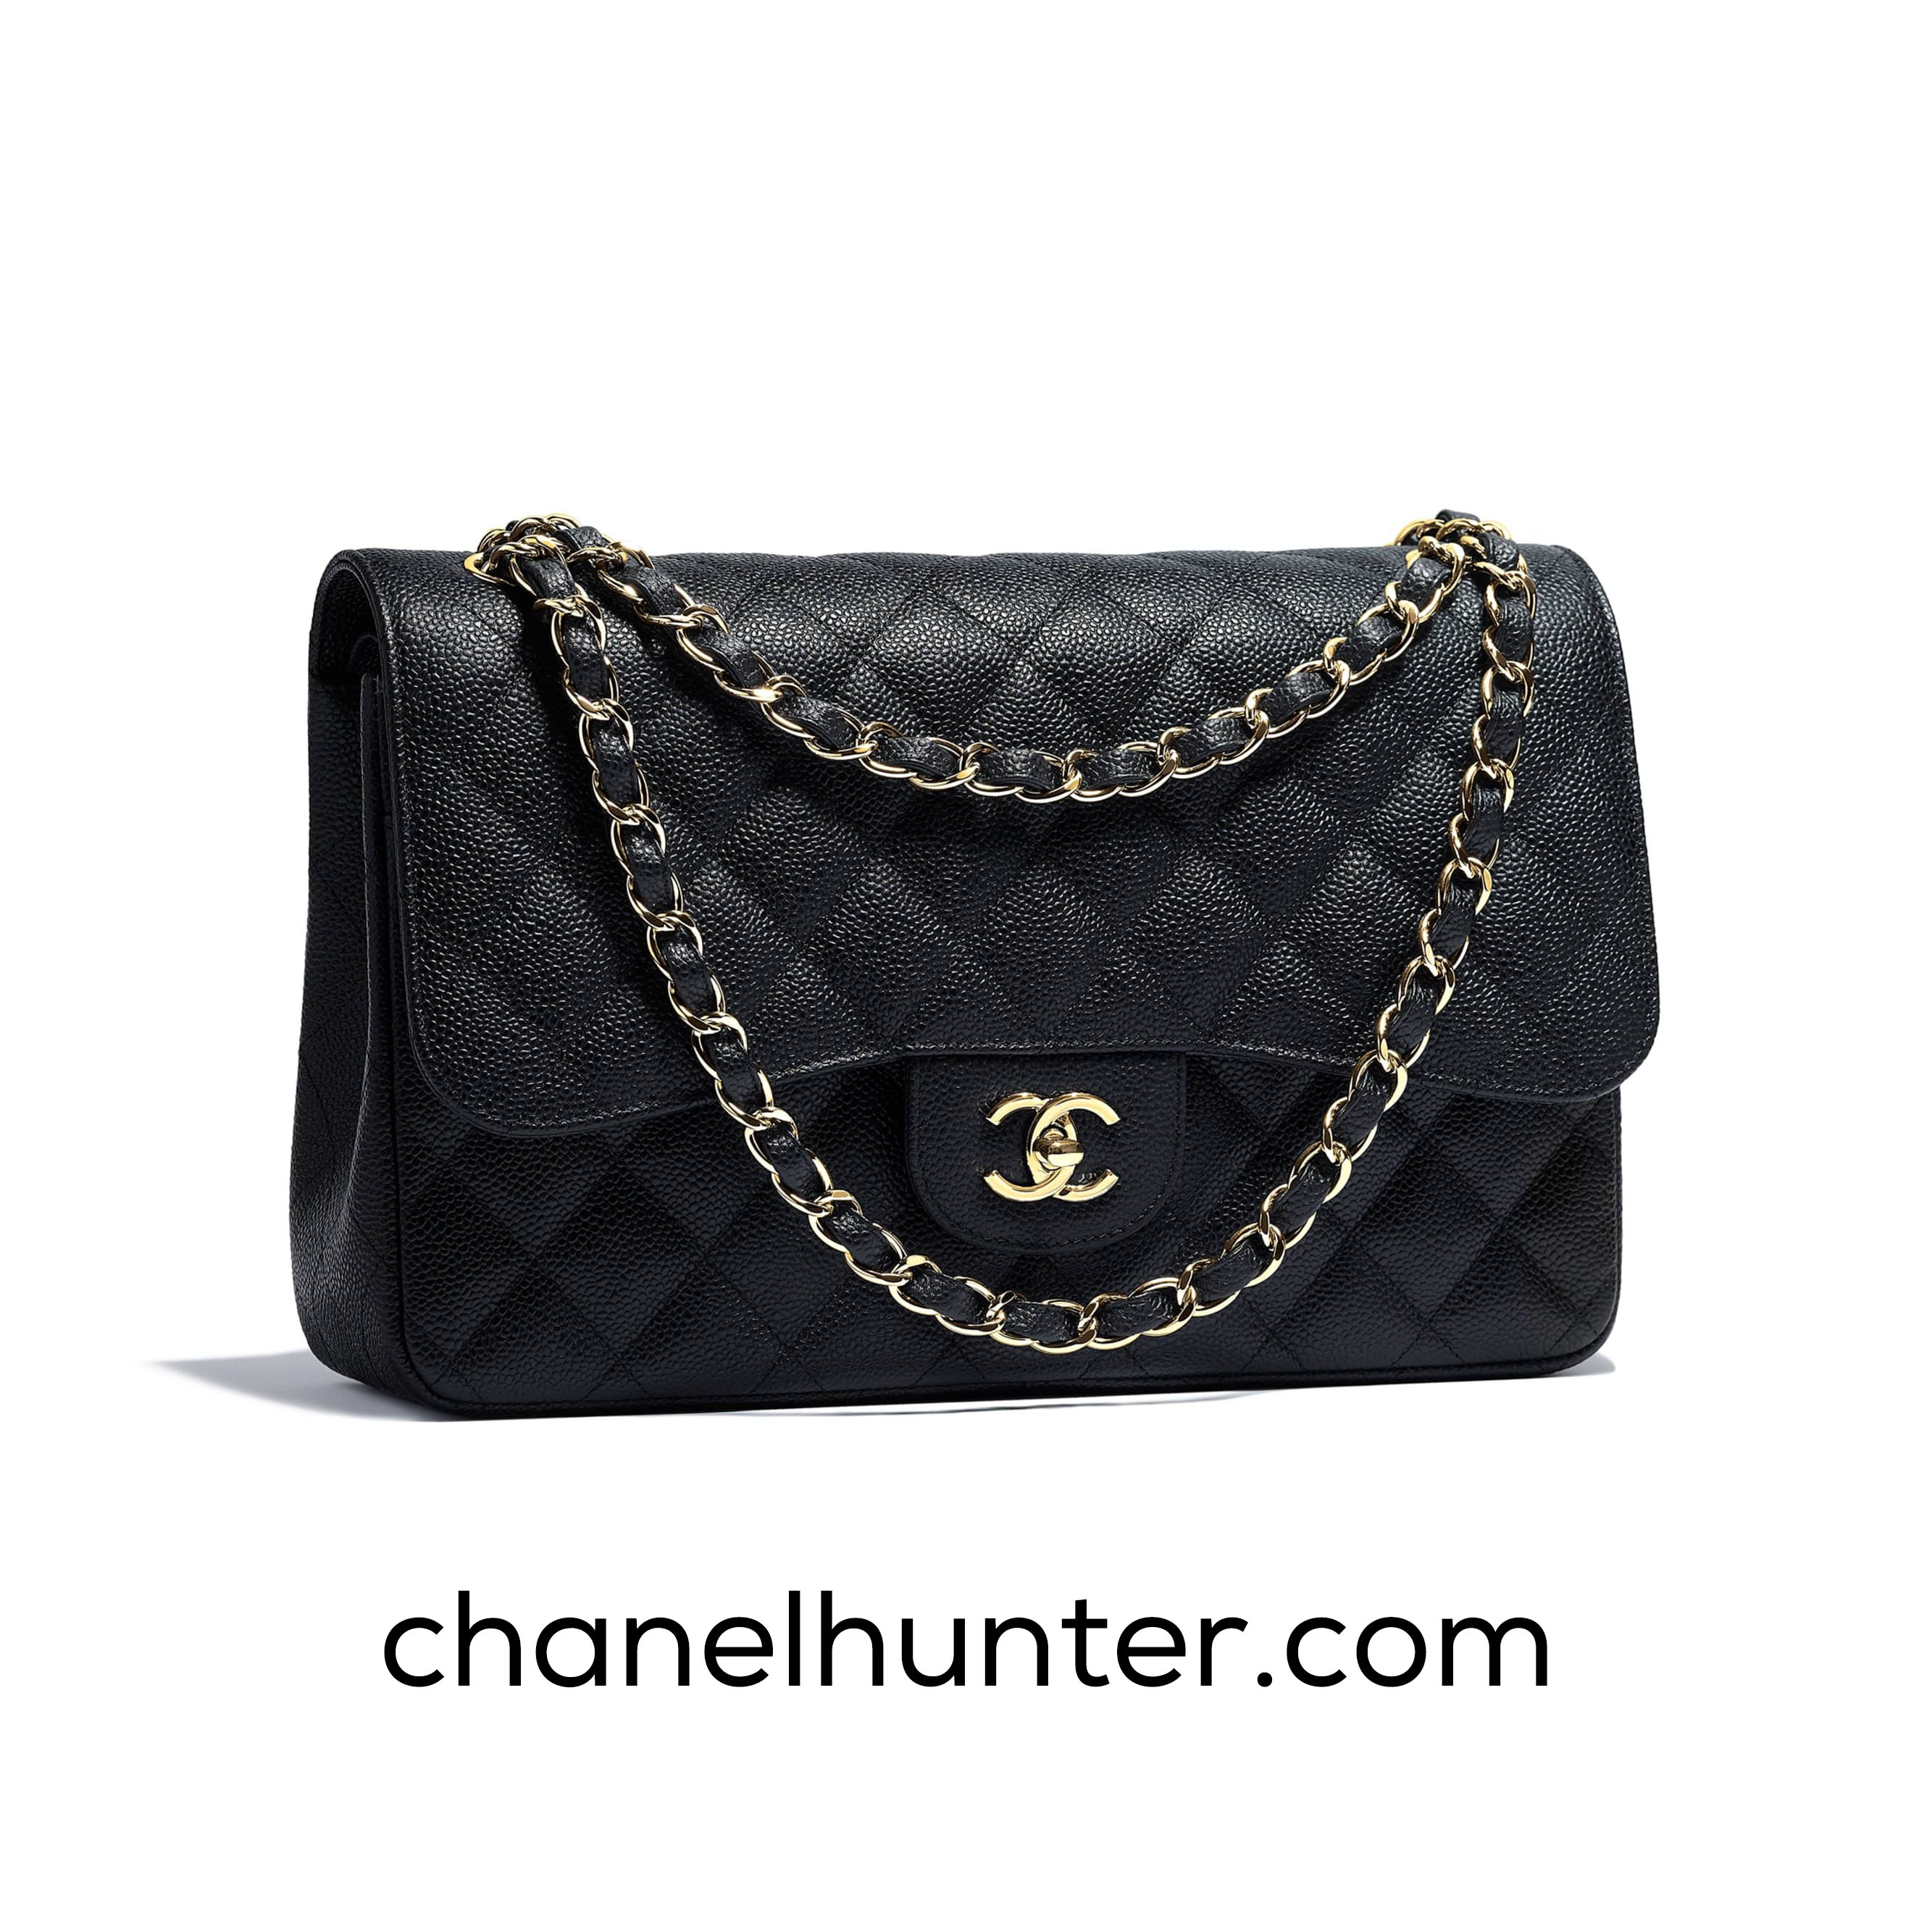 9fe636792c0da9 Chanel Replica bags do look not only beautiful, fancy, and elegant, but  also similar to the original ones. It is quite a task to tell the  difference between ...